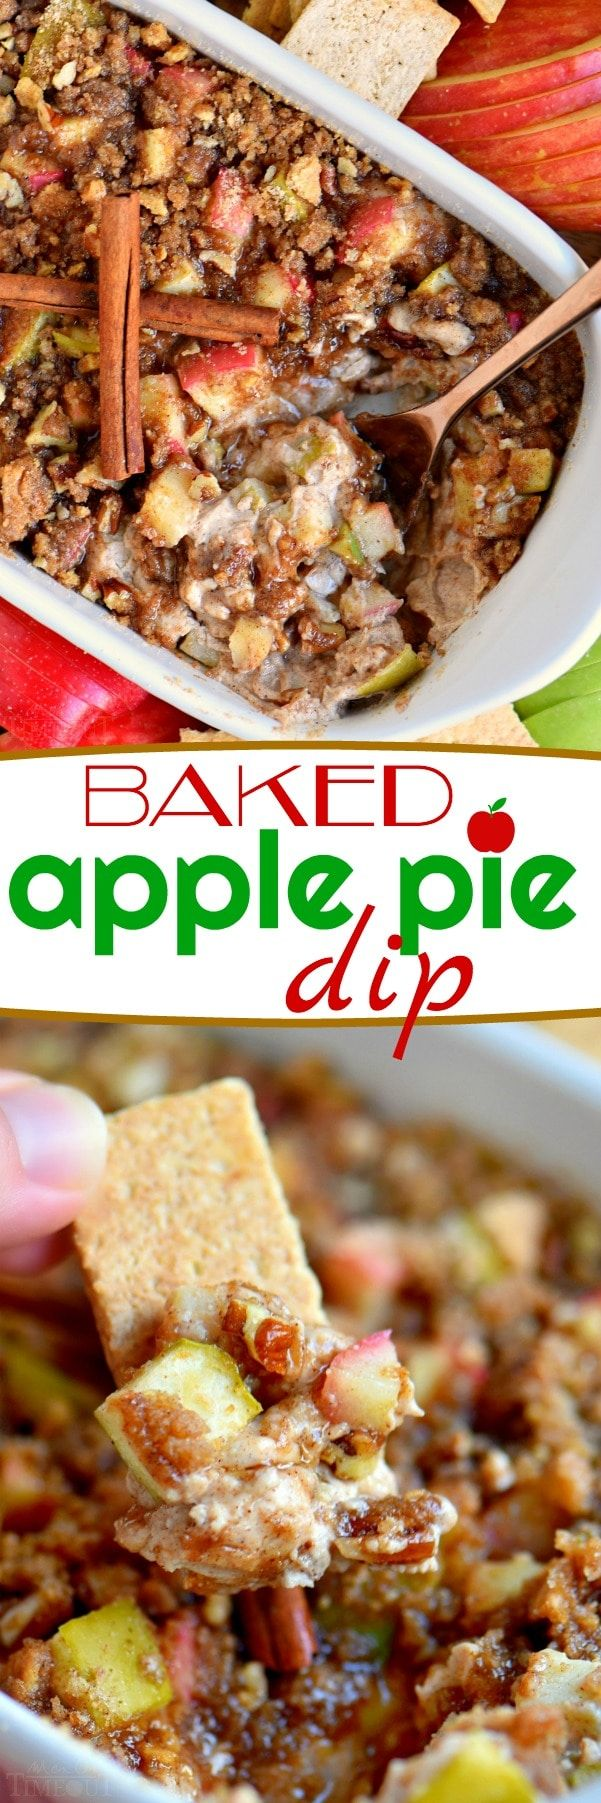 This easy Baked Apple Pie Dip is made with fresh apples